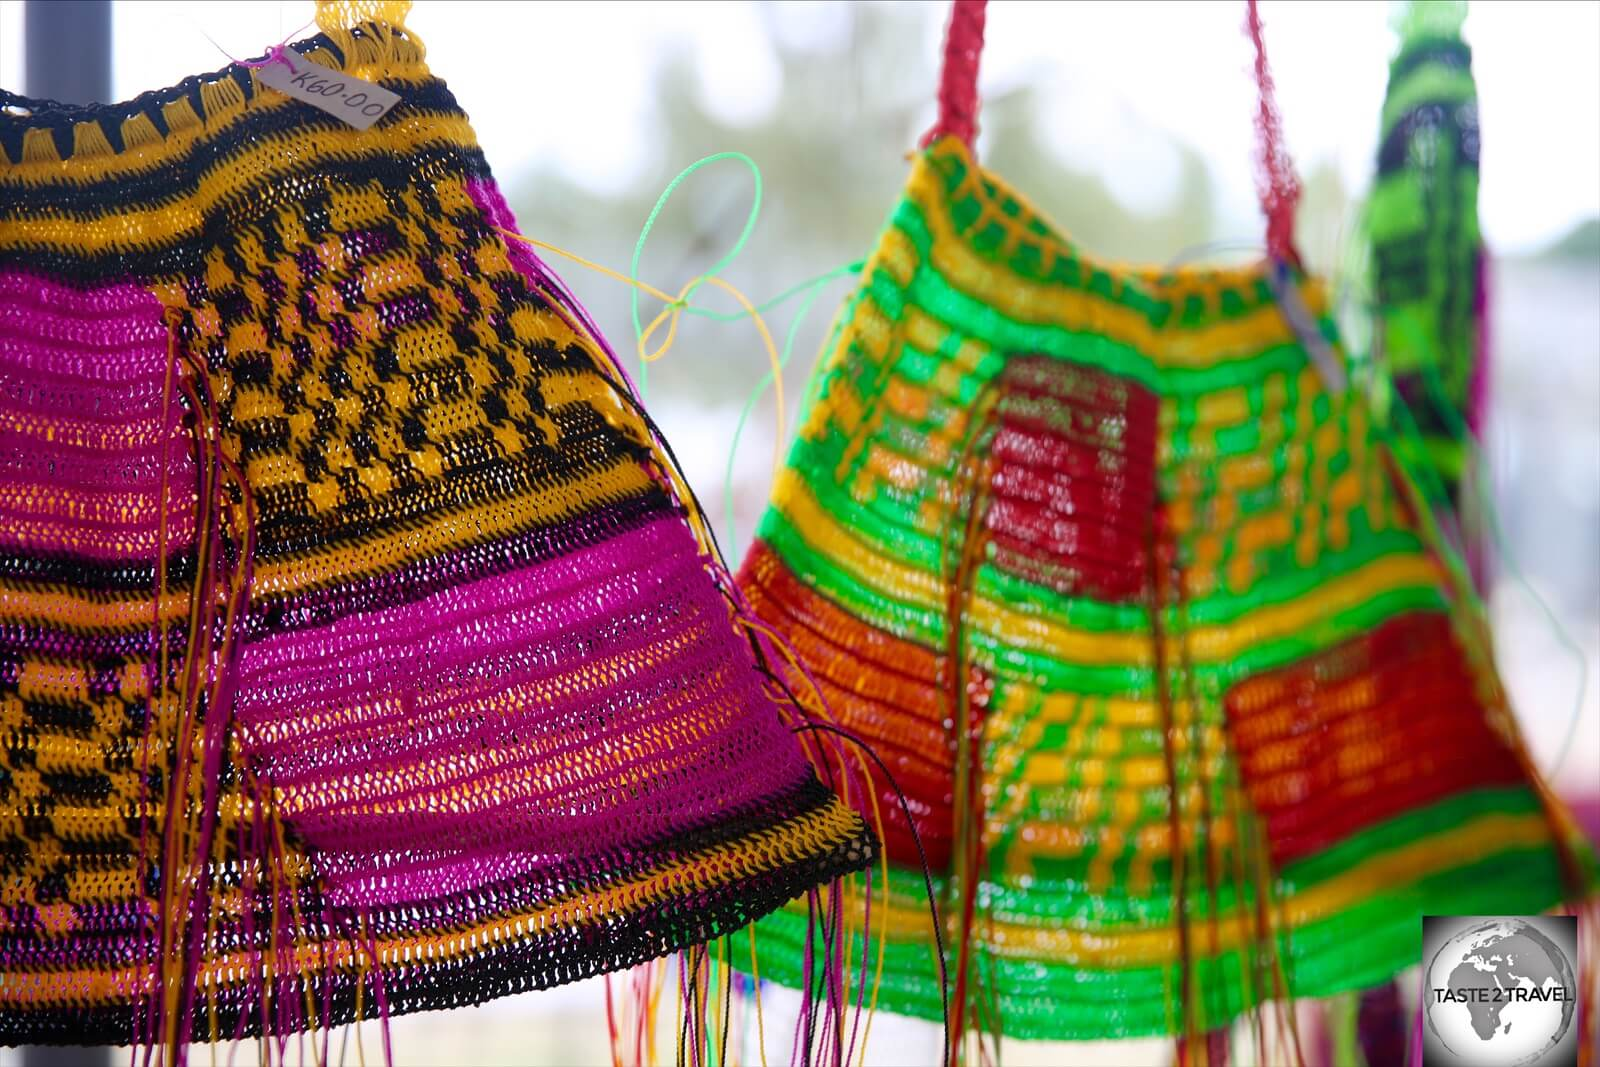 These colourful, hand-woven 'bilums' at Madang market cost K 60 (US$17.60)